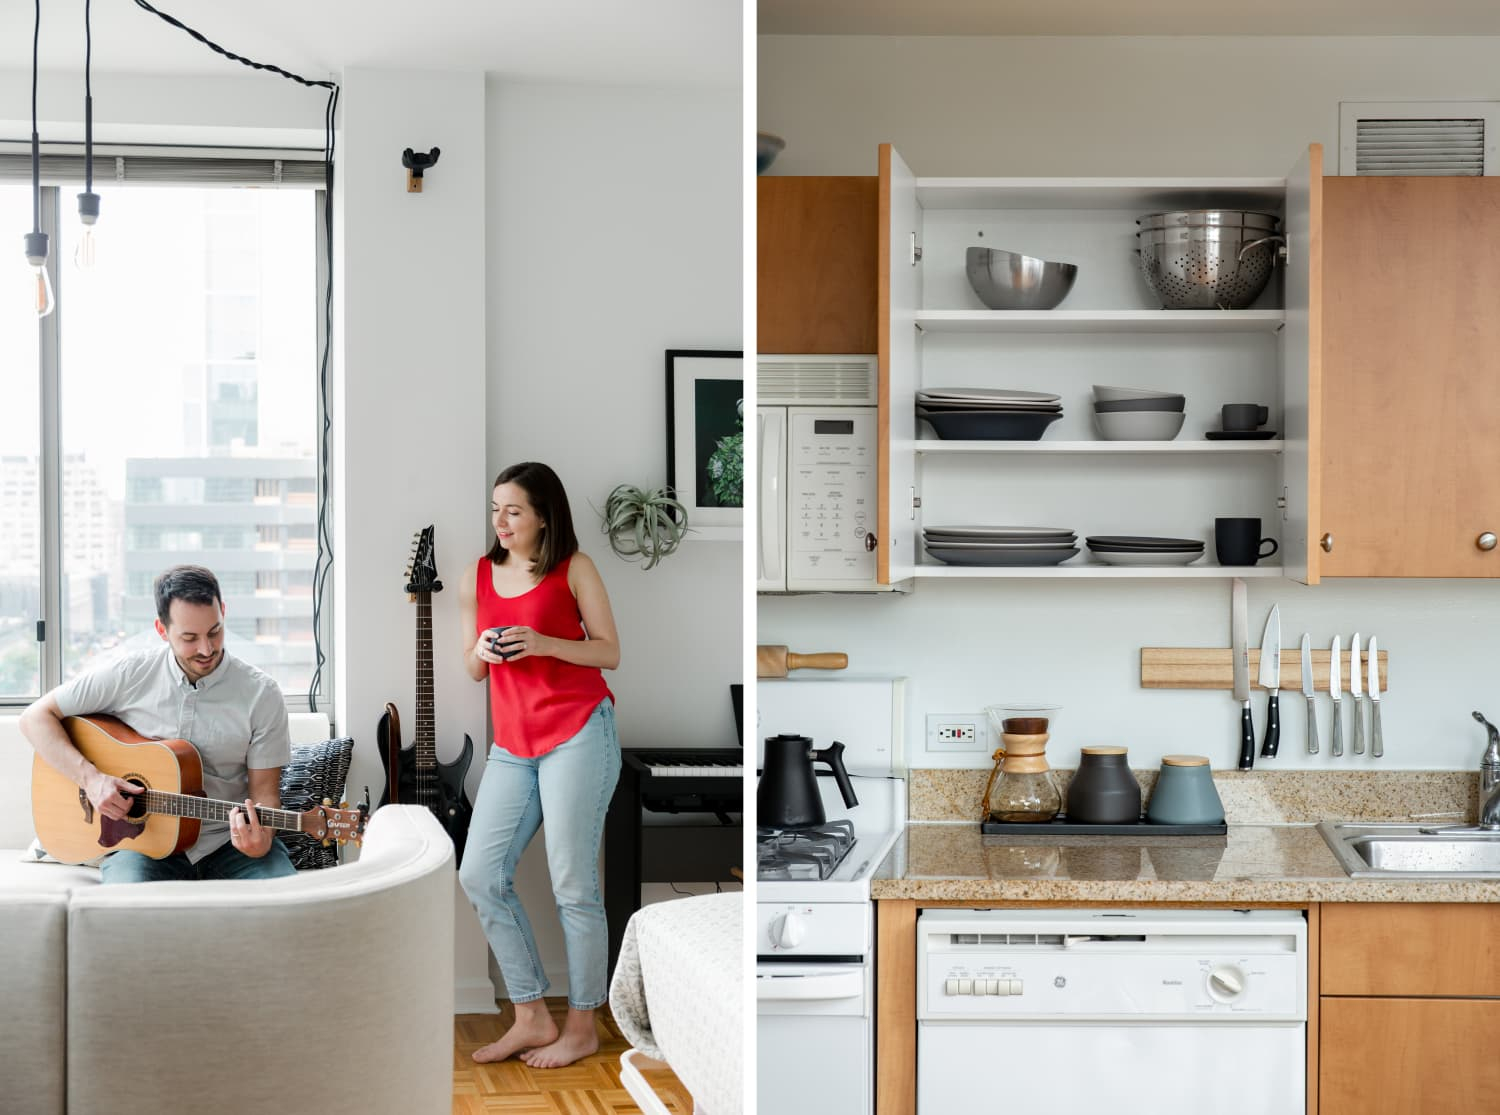 This 400-Square-Foot Studio Apartment Is the Most Incredibly Organized and Versatile Home We've Ever Seen